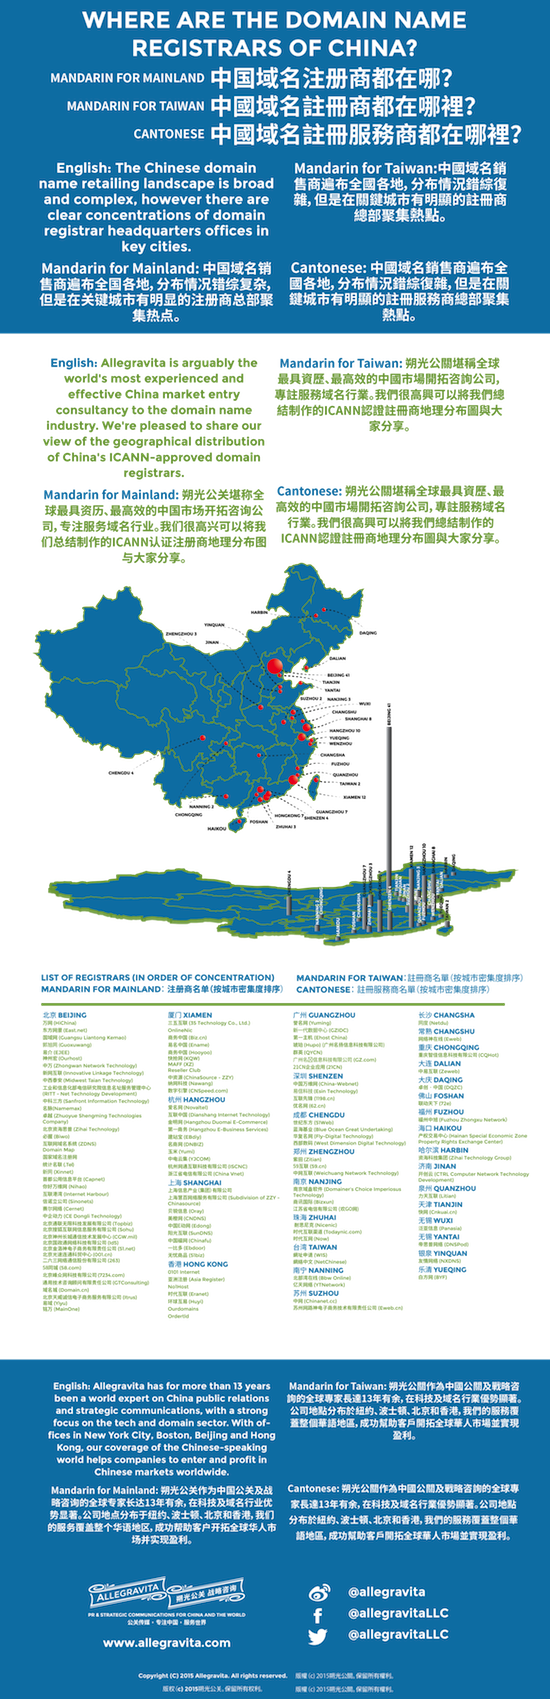 China registrars - small